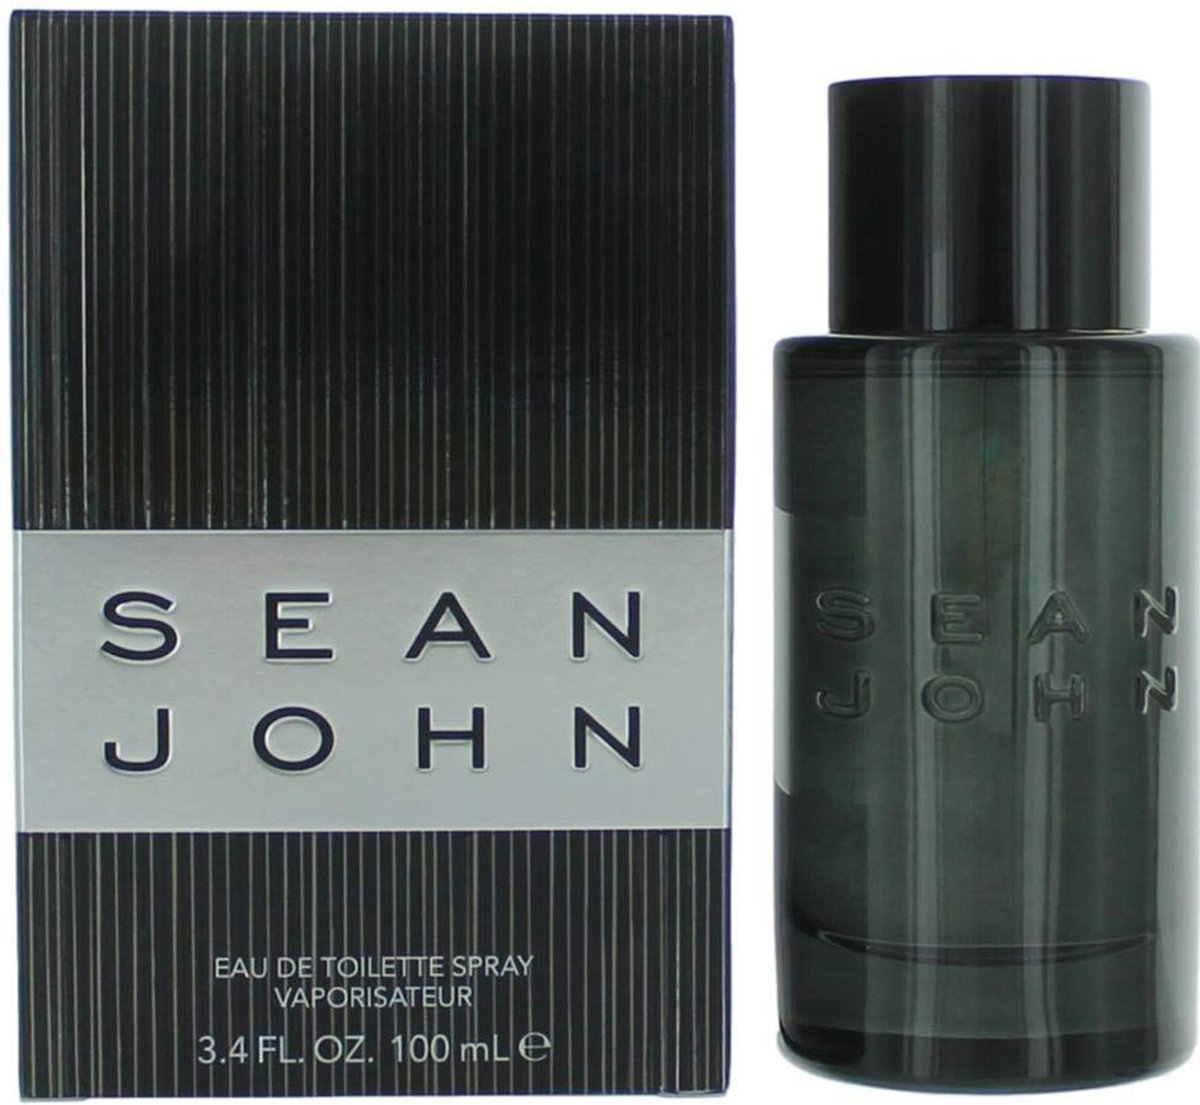 Sean John 100 ml - Eau De Toilette Spray Herenparfum